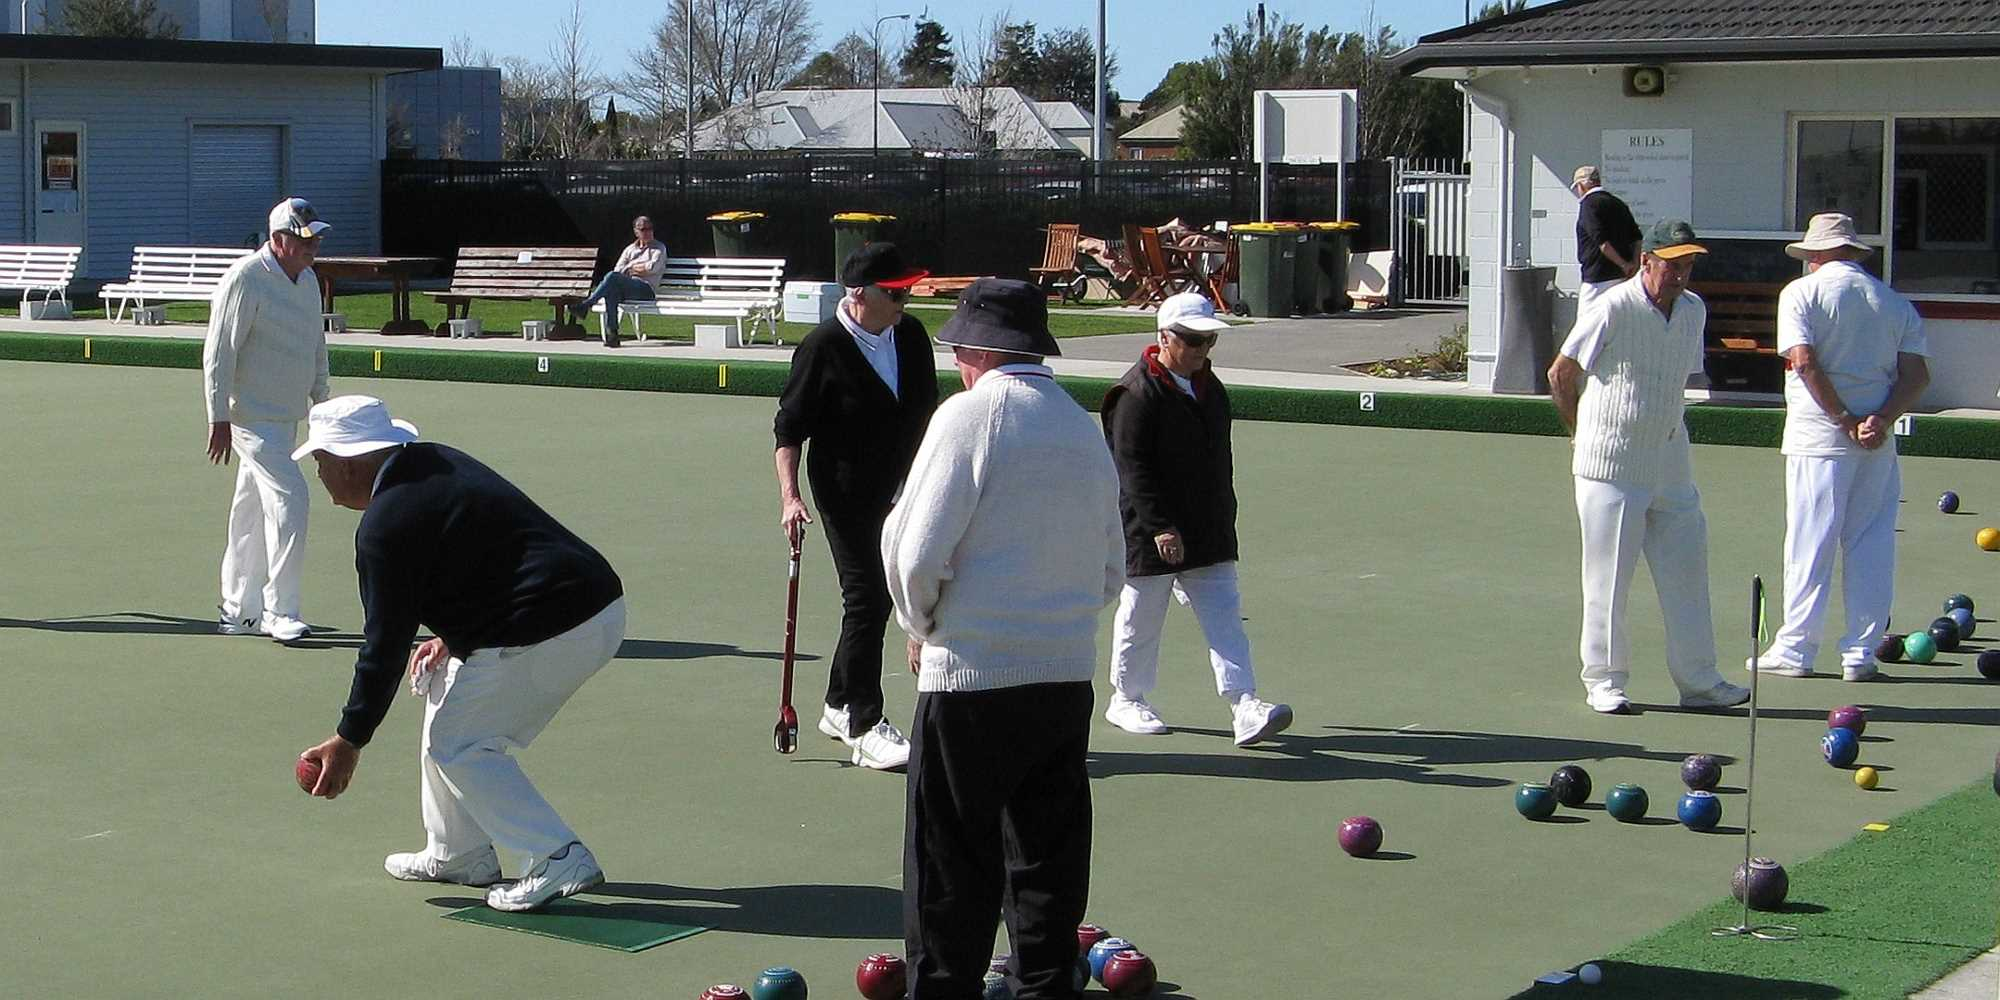 Opening Day 2019 - Bowling for the New Season Begins